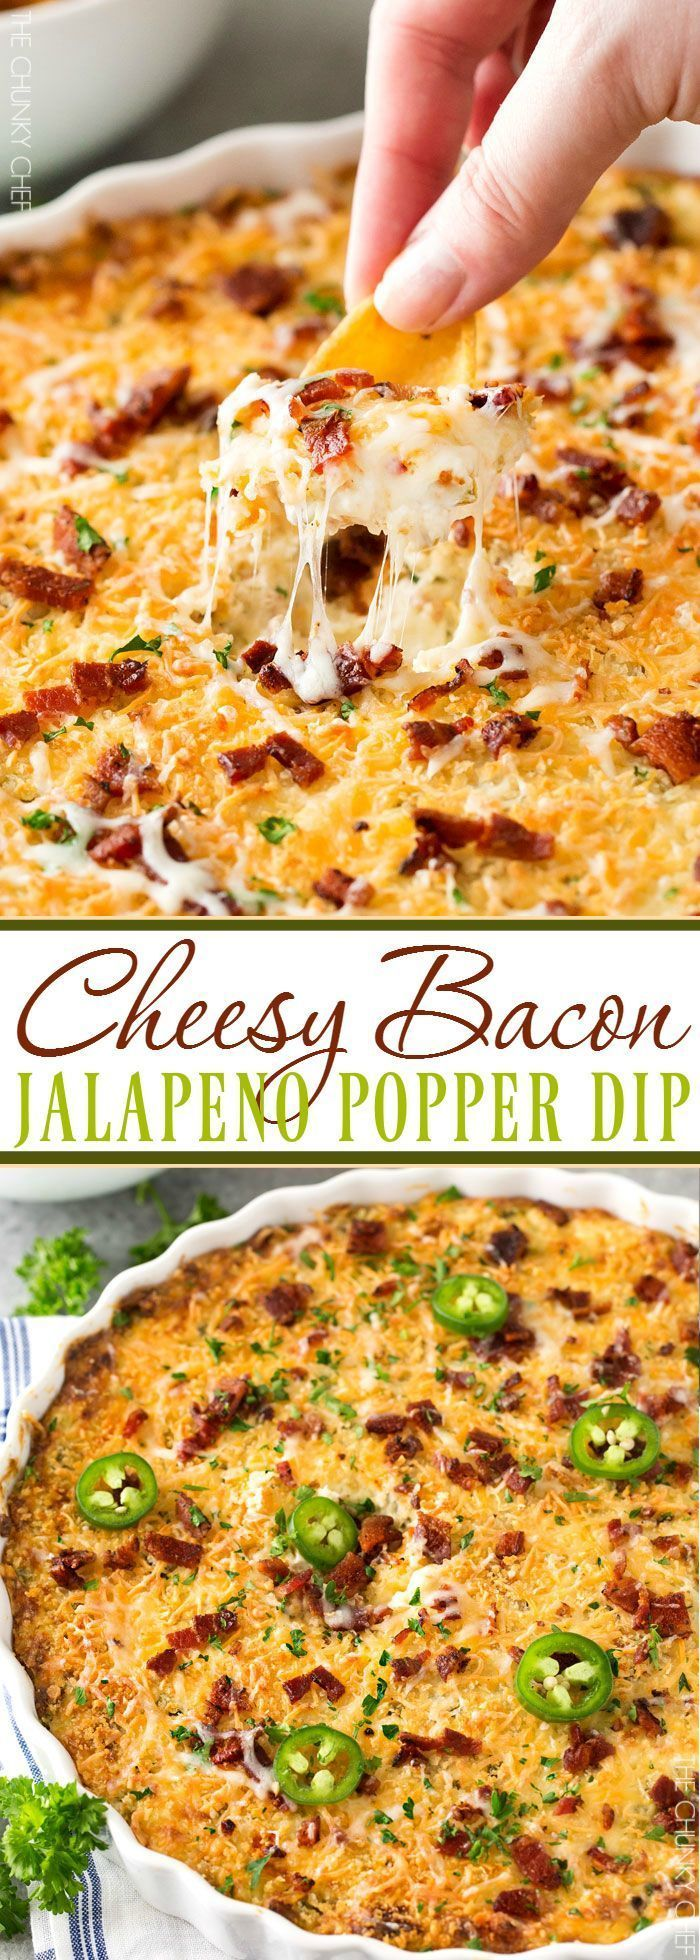 Cheesy Bacon Jalapeno Popper Dip   Warm and spicy, this ultra cheesy bacon jalapeno popper dip will be the hit of ANY party you bring it to!   thechunkychef.com